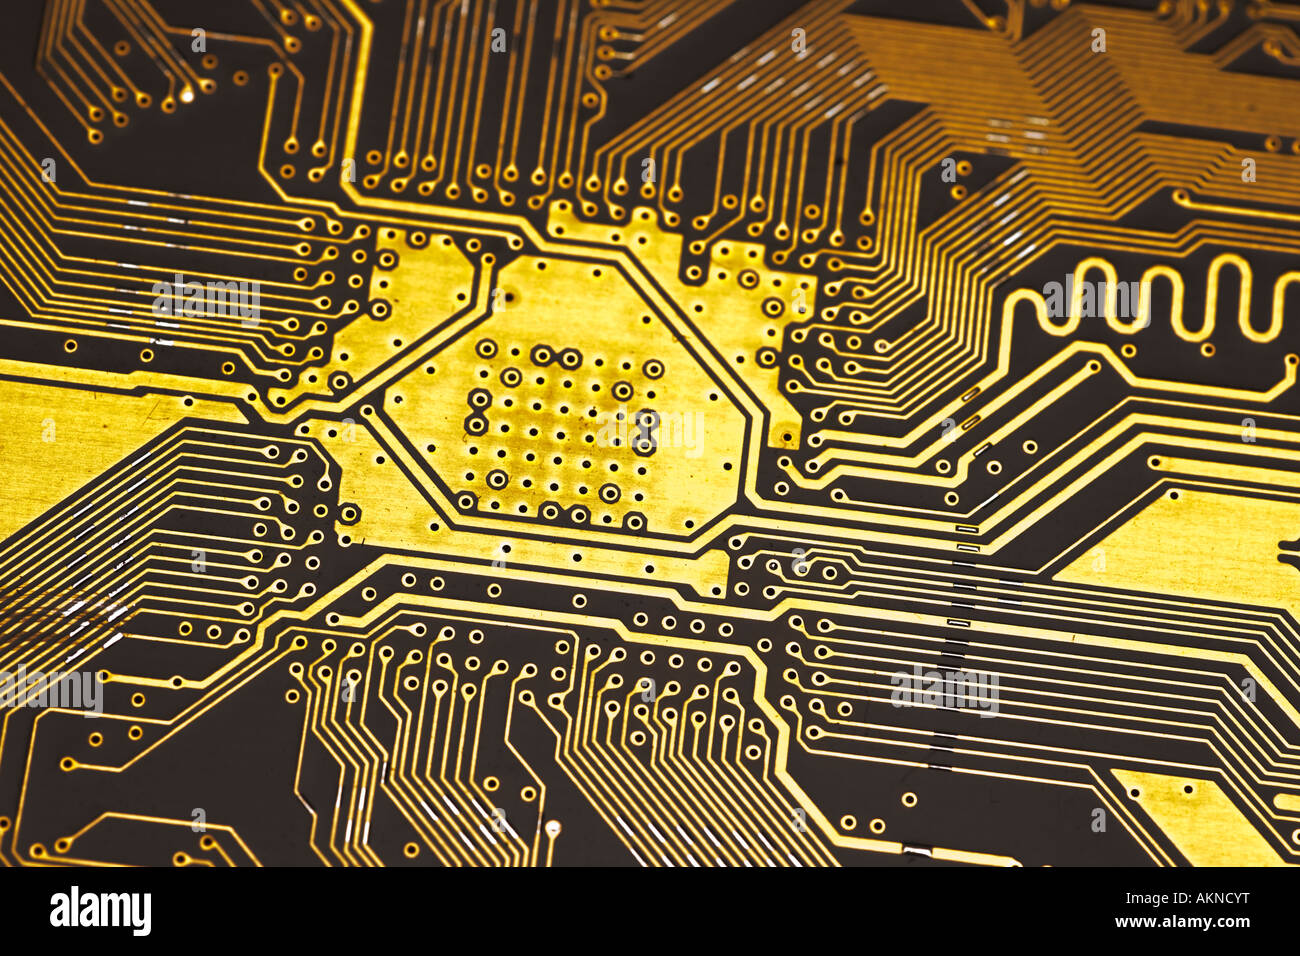 close up photograph of gold coloured digital computer circuit board